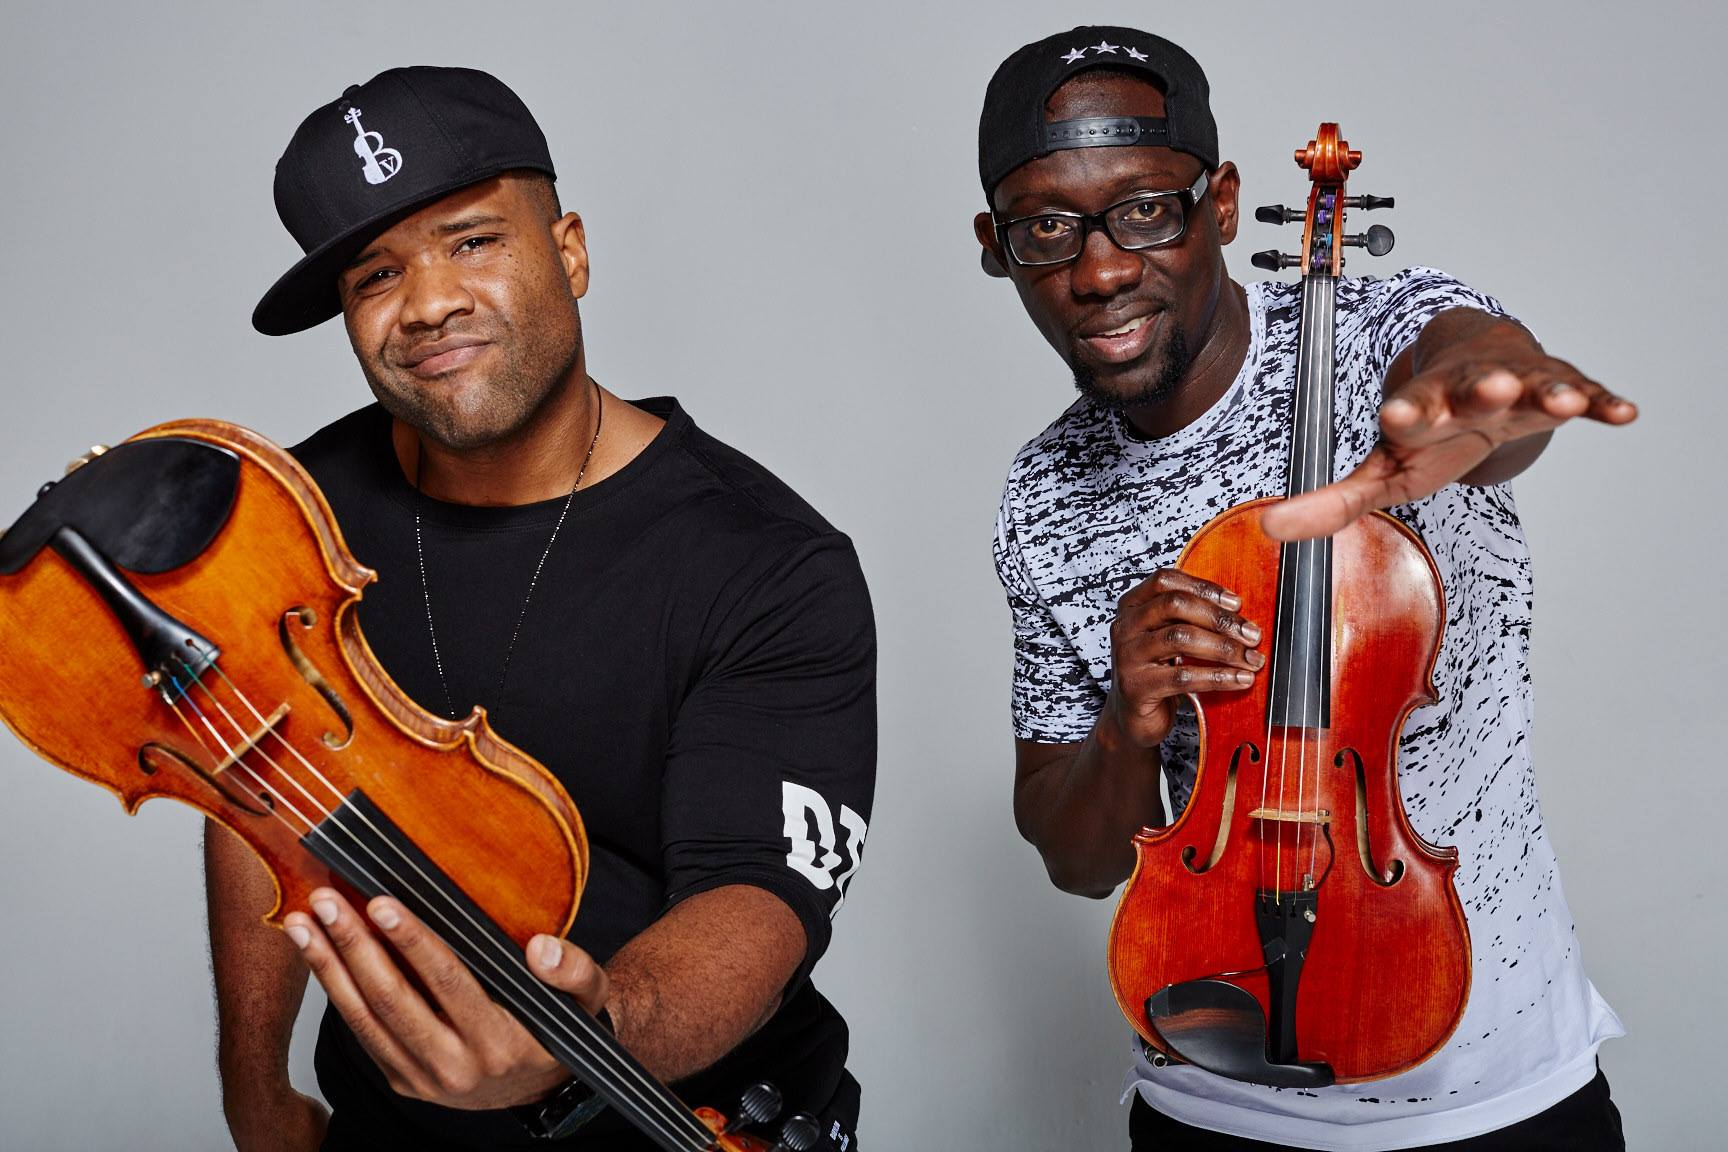 303 Magazine, 303 Music, Black Violin, Black Violin Denver, Black Violin Interview, Take the Stairs, The Paramount Theatre, Josie Russell